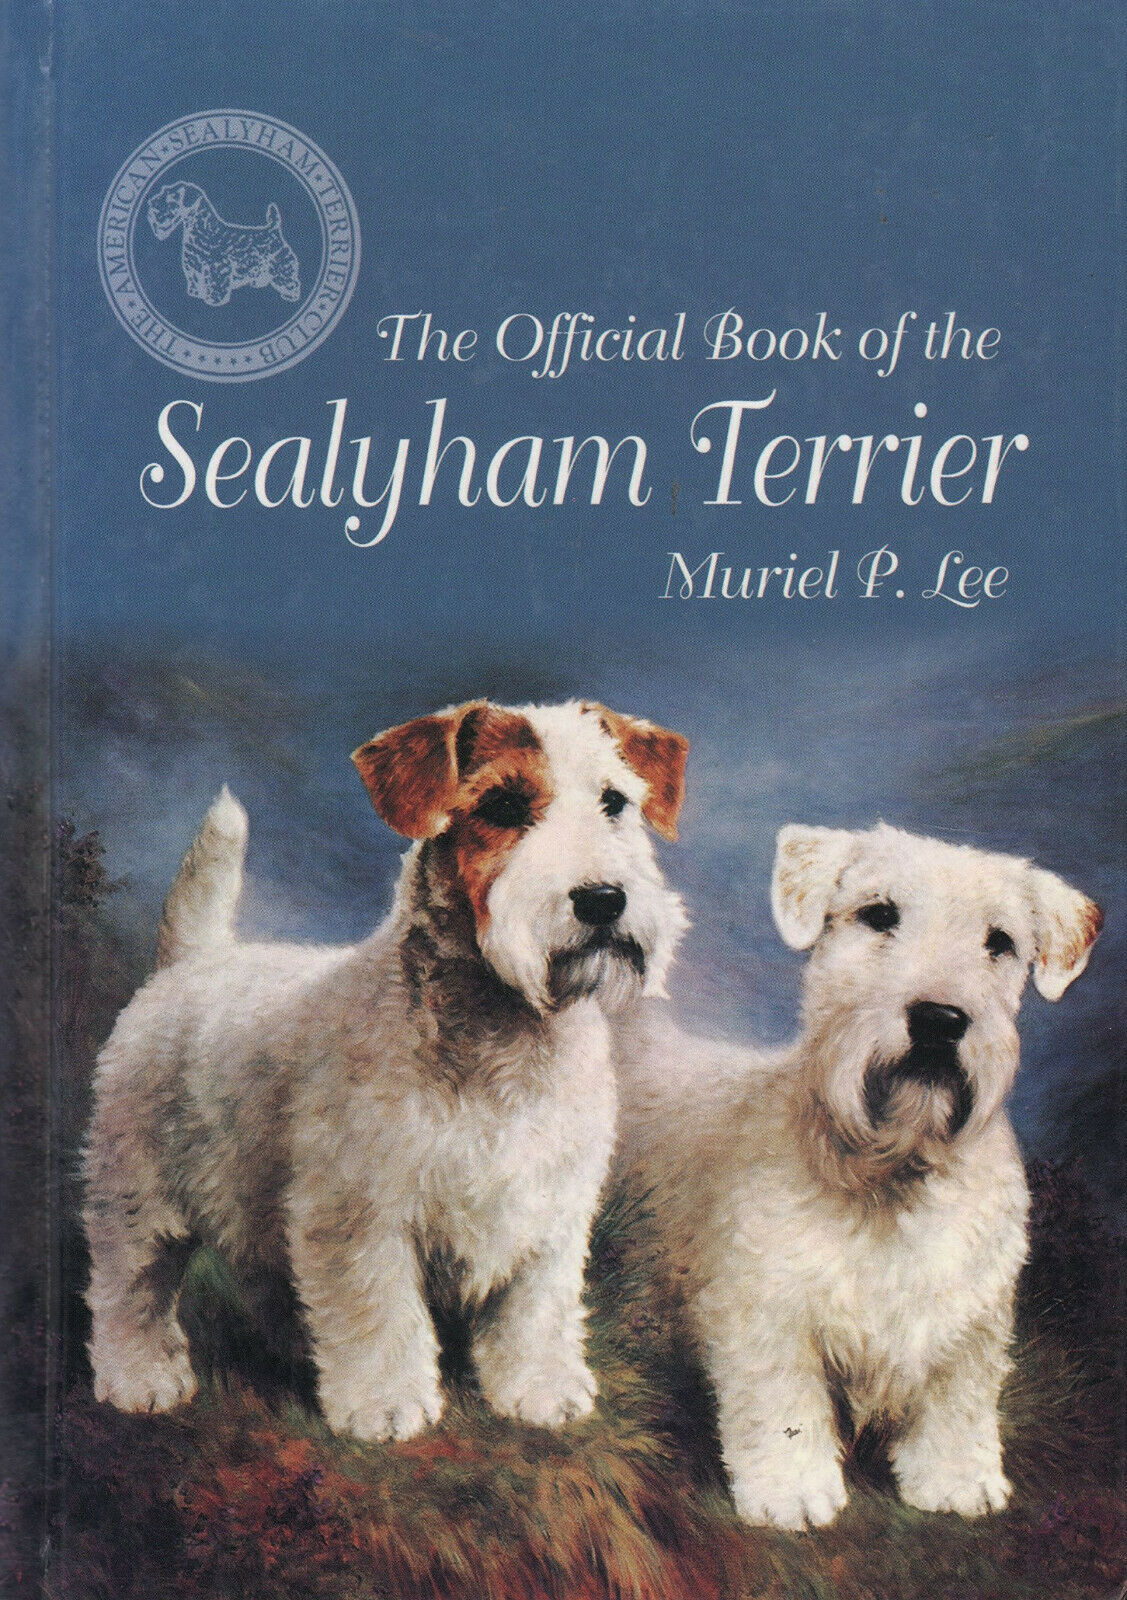 The Official Book of the Sealyham Terrier : Muriel P. Lee : New Hardcover  @ZB